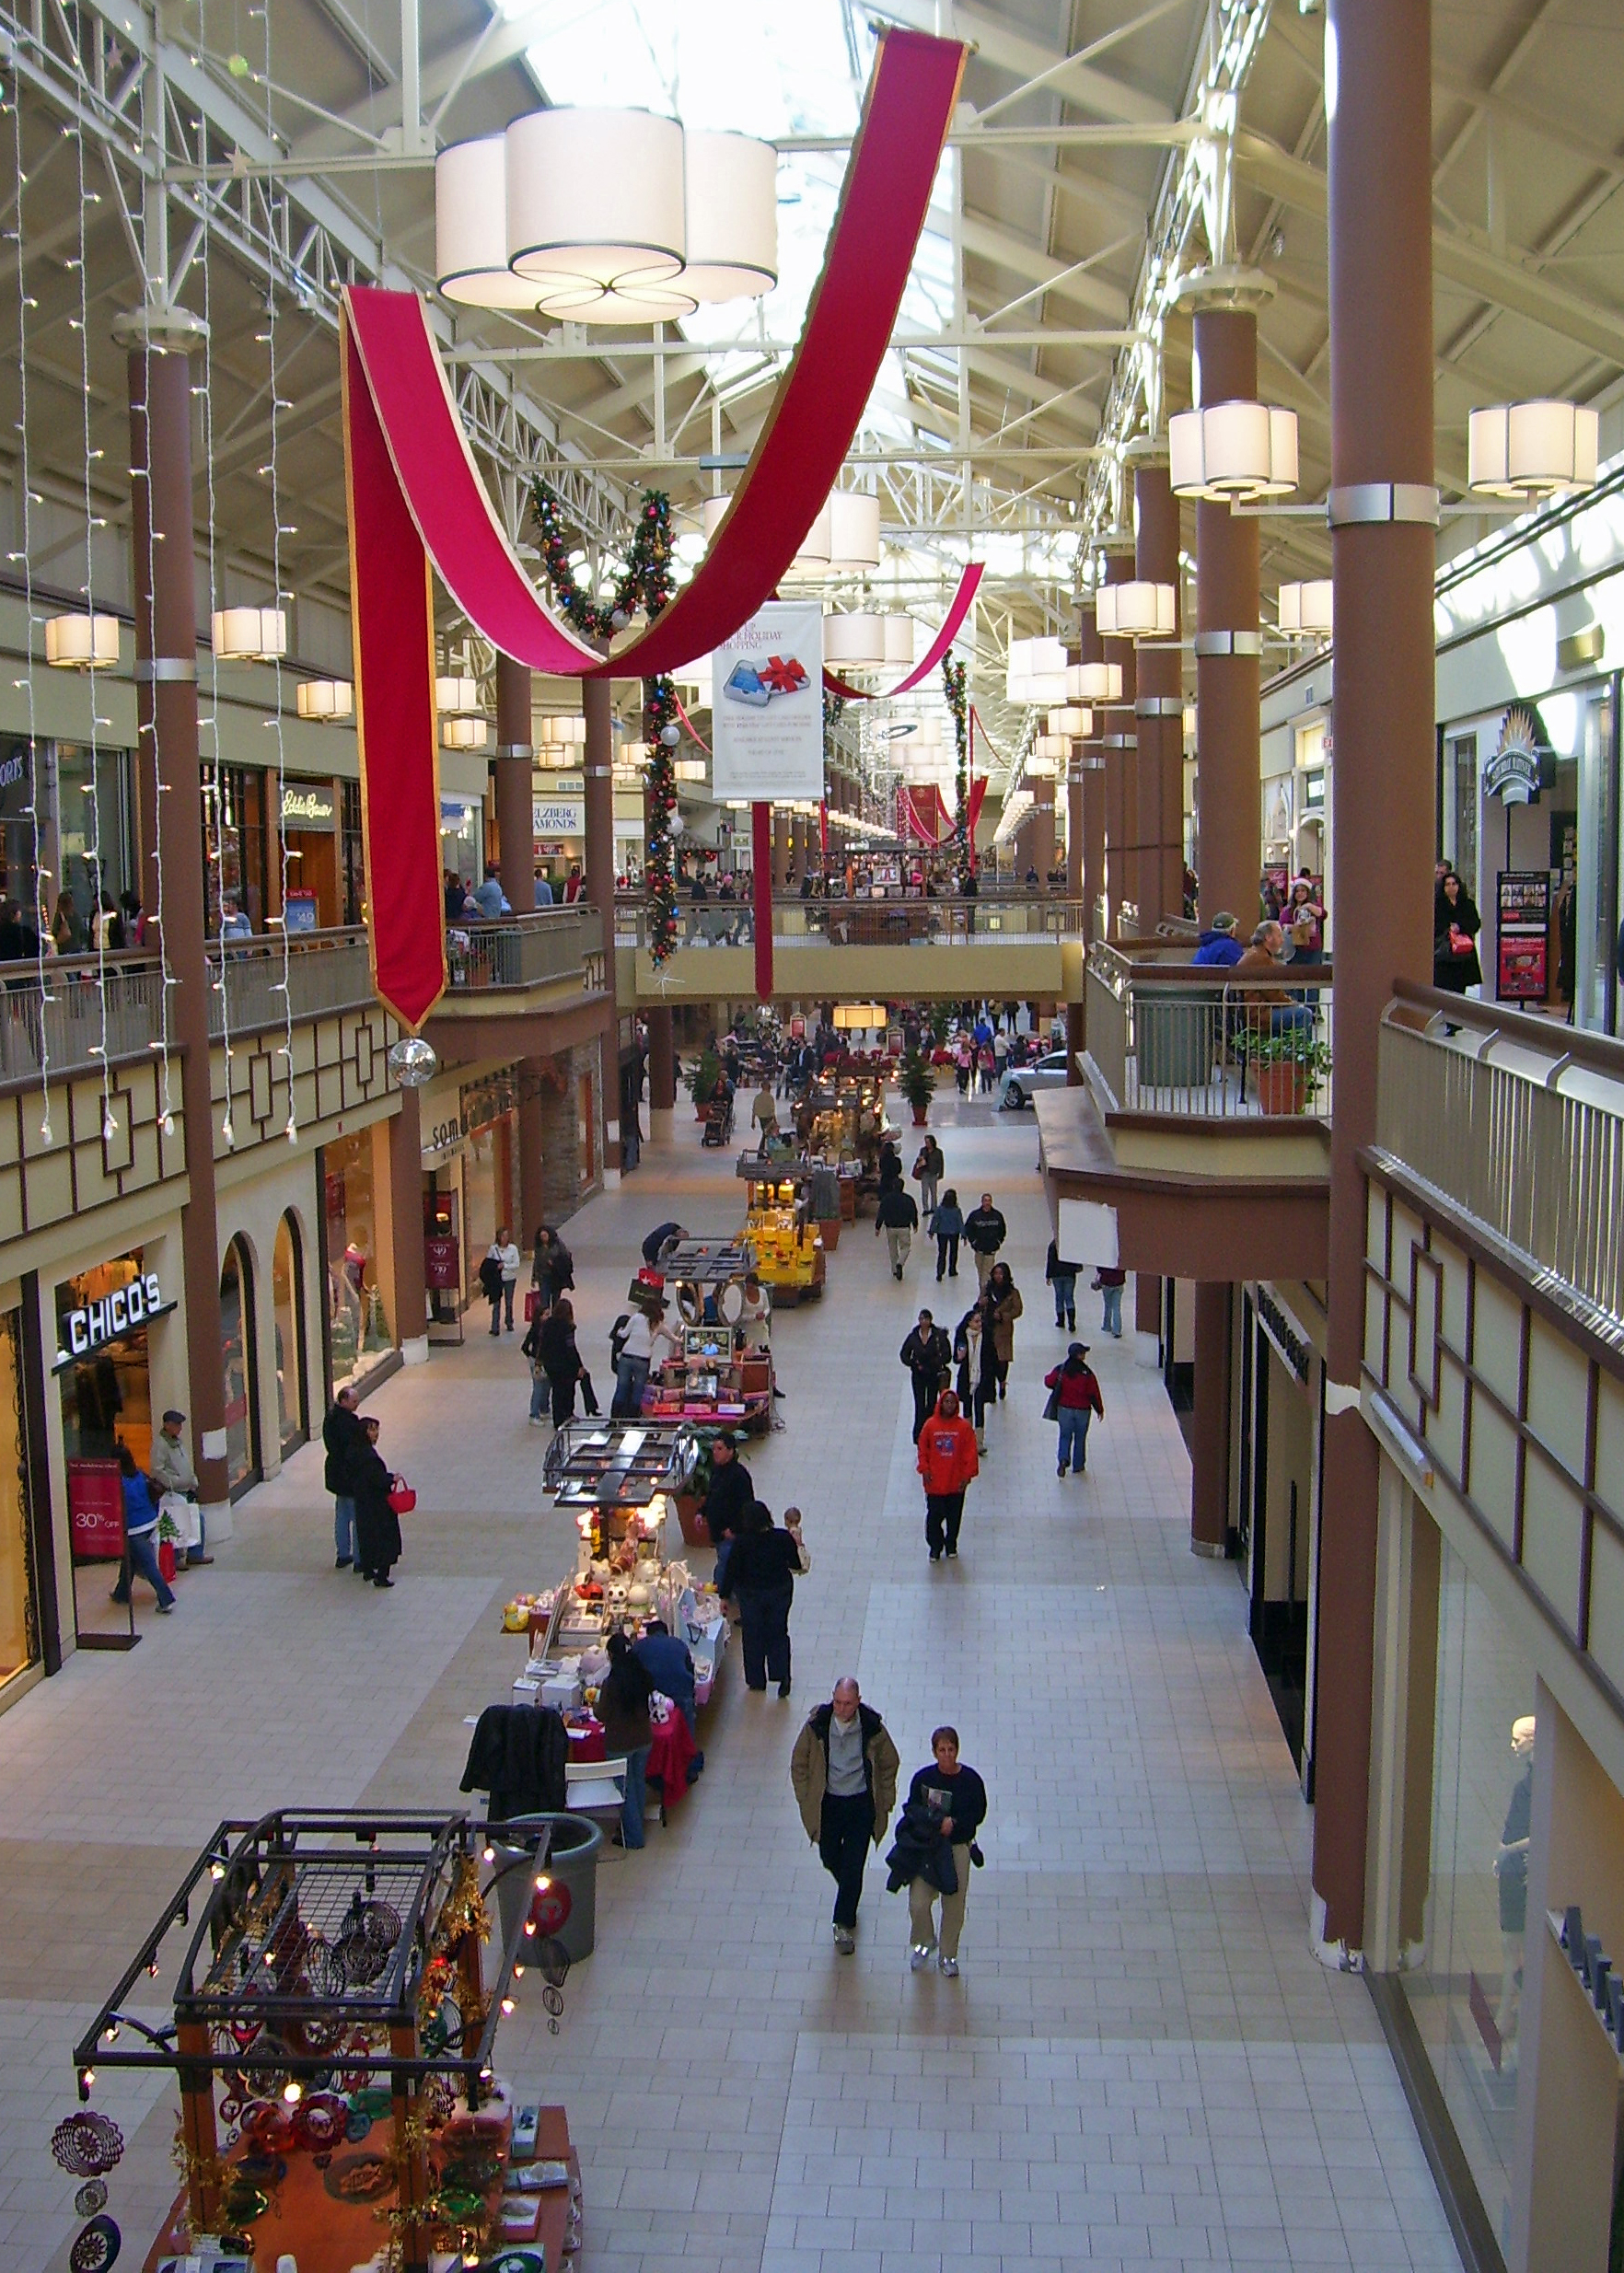 Danbury fair shopping mall wikiwand for The danbury